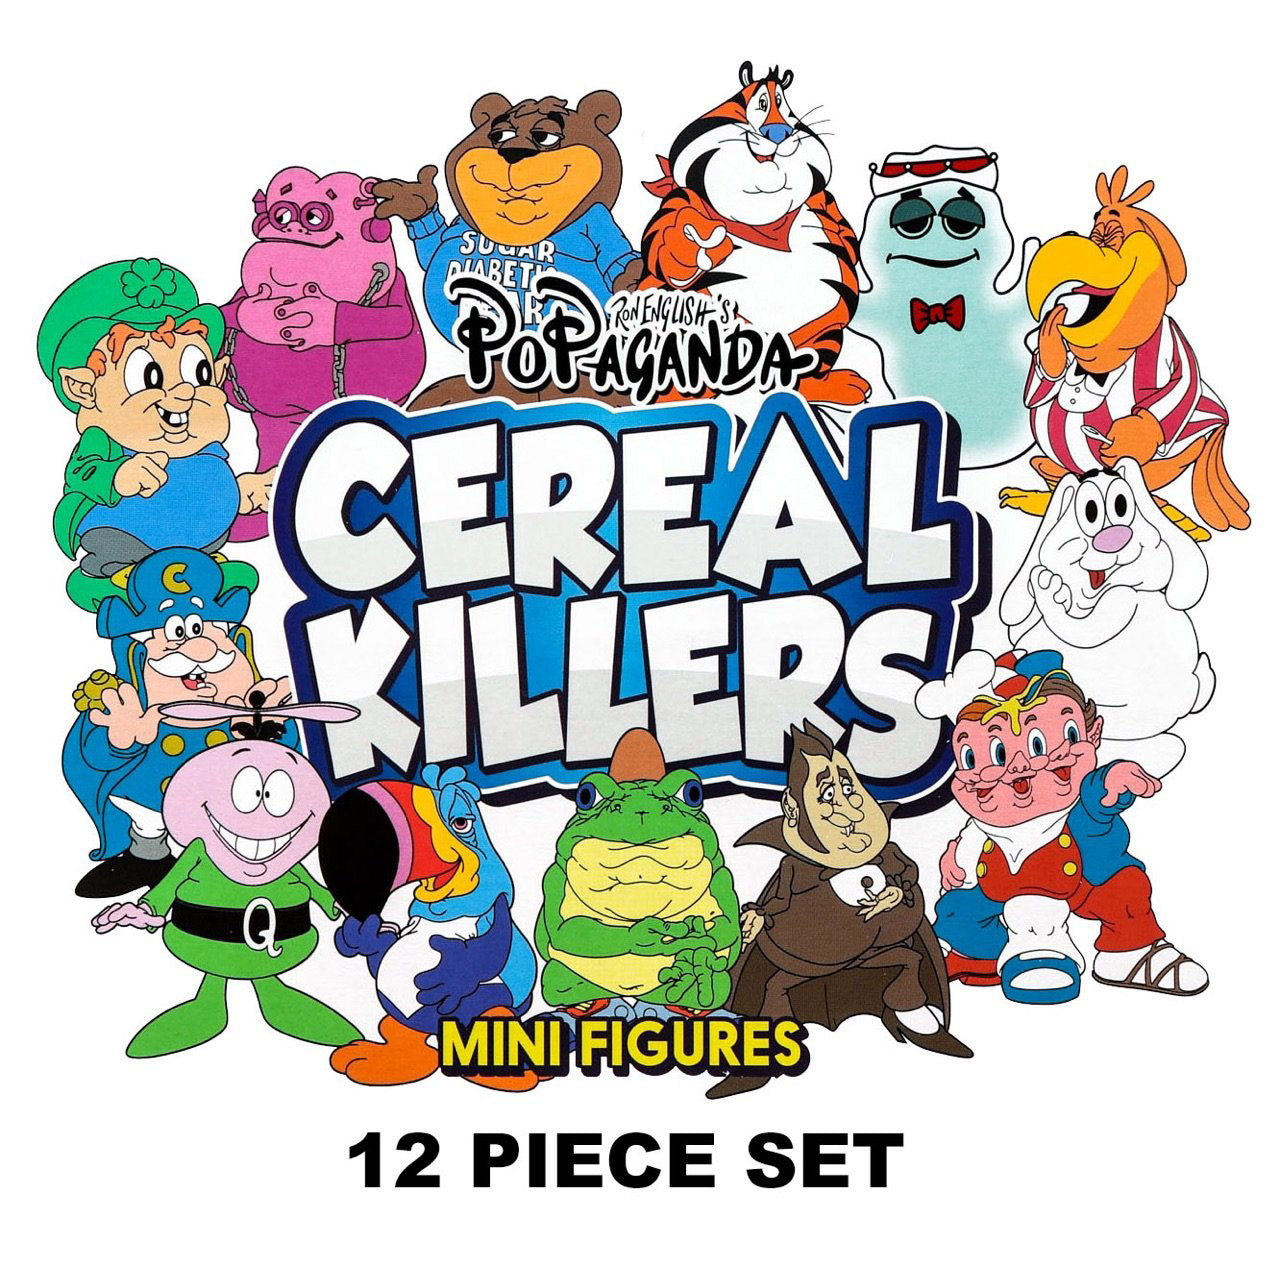 CEREALKILLERS12PIECEMINIFIGURESSET